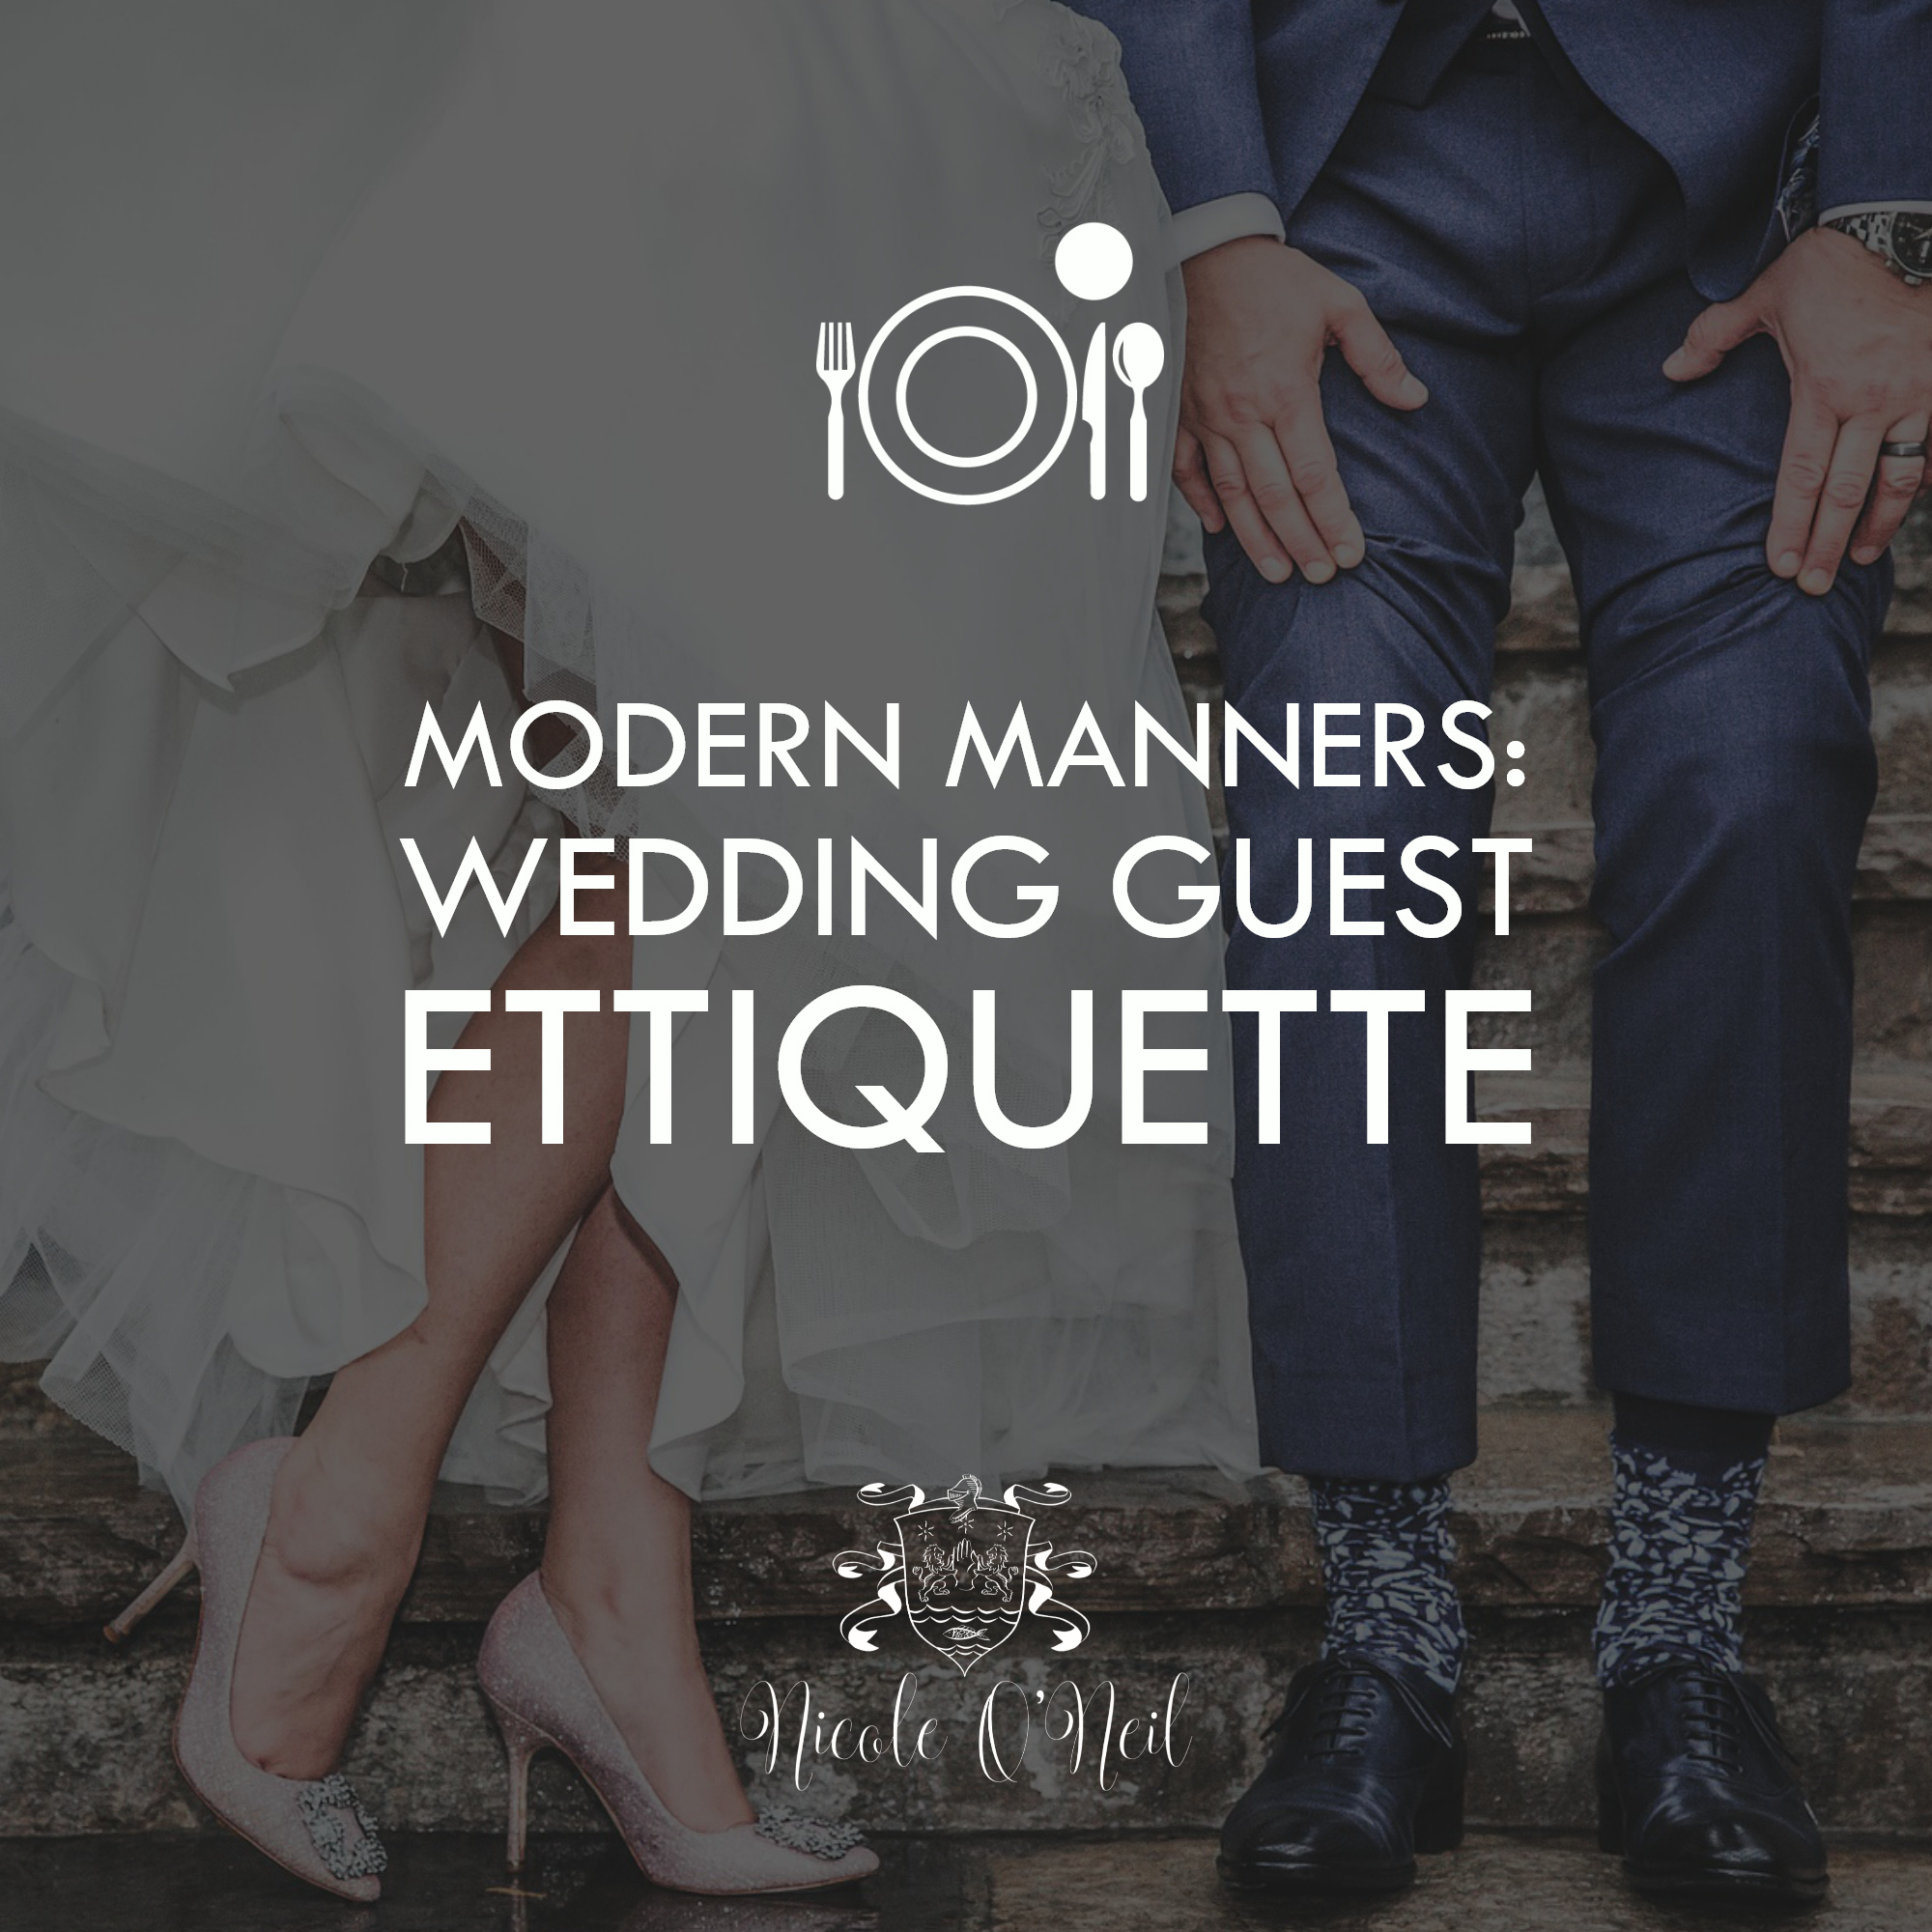 Should you go to an ex's wedding? Can you invite a plus one? Do you have to attend the entire wedding day? Can you share photos from a wedding on social media? Do you need to buy a gift from the wedding registry? Get the answers to all of your questions and get the rundown on Modern Day 21st Century Wedding Etiquette.